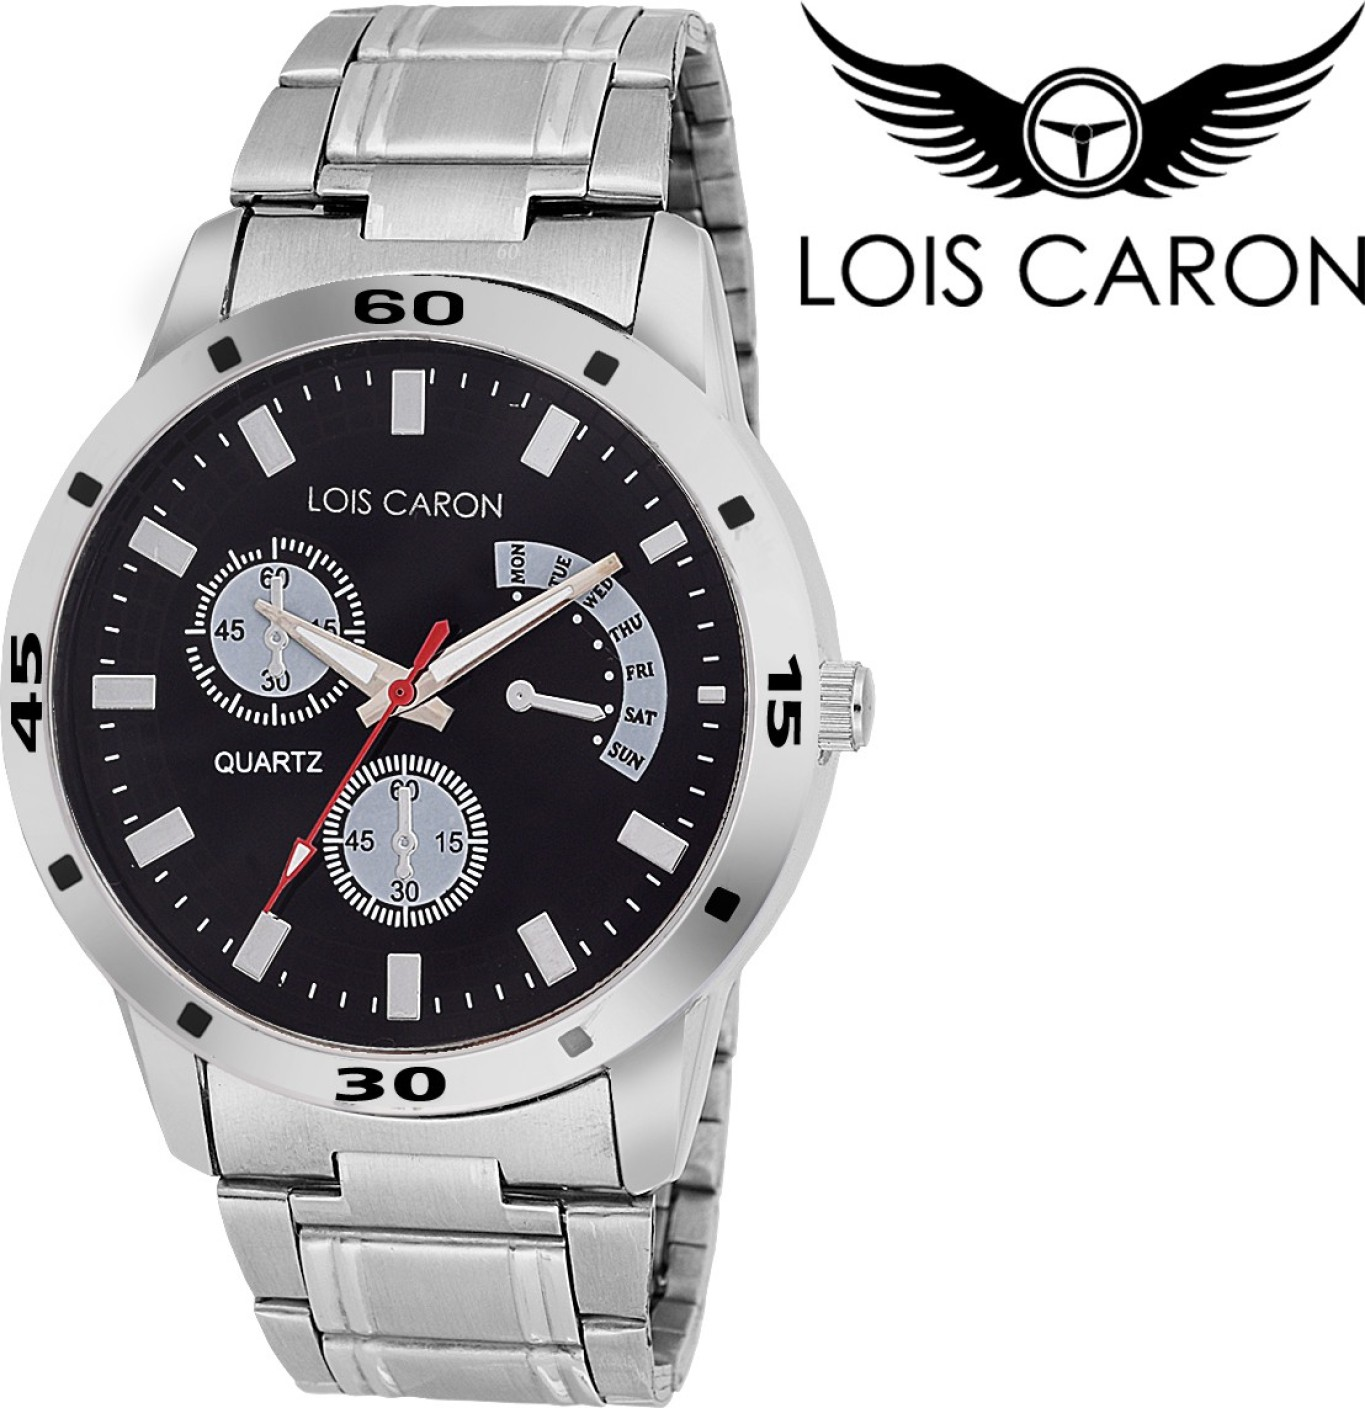 mens watches store online buy mens watches products online at lois caron lcs 4048 chronograph pattern analog watch for men